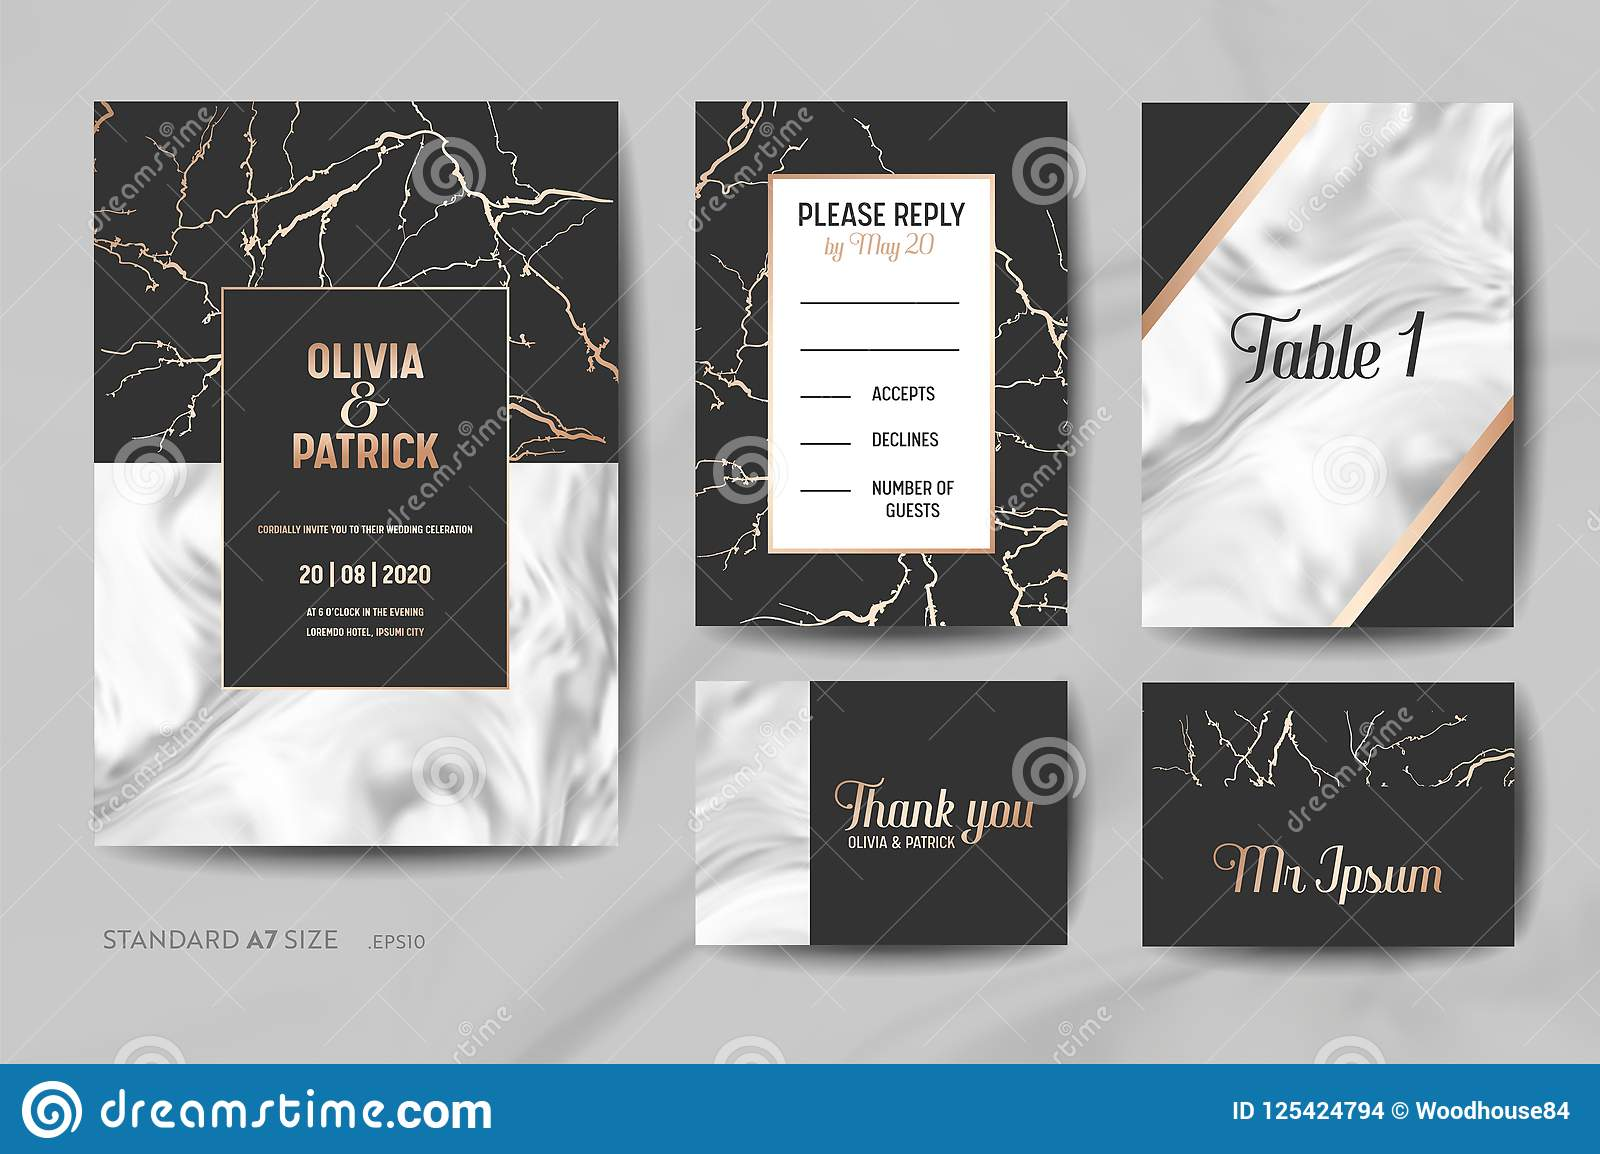 Wedding Invitation Cards Collection. Save the Date, RSVP, Signs with trendy marble texture background geometric frame